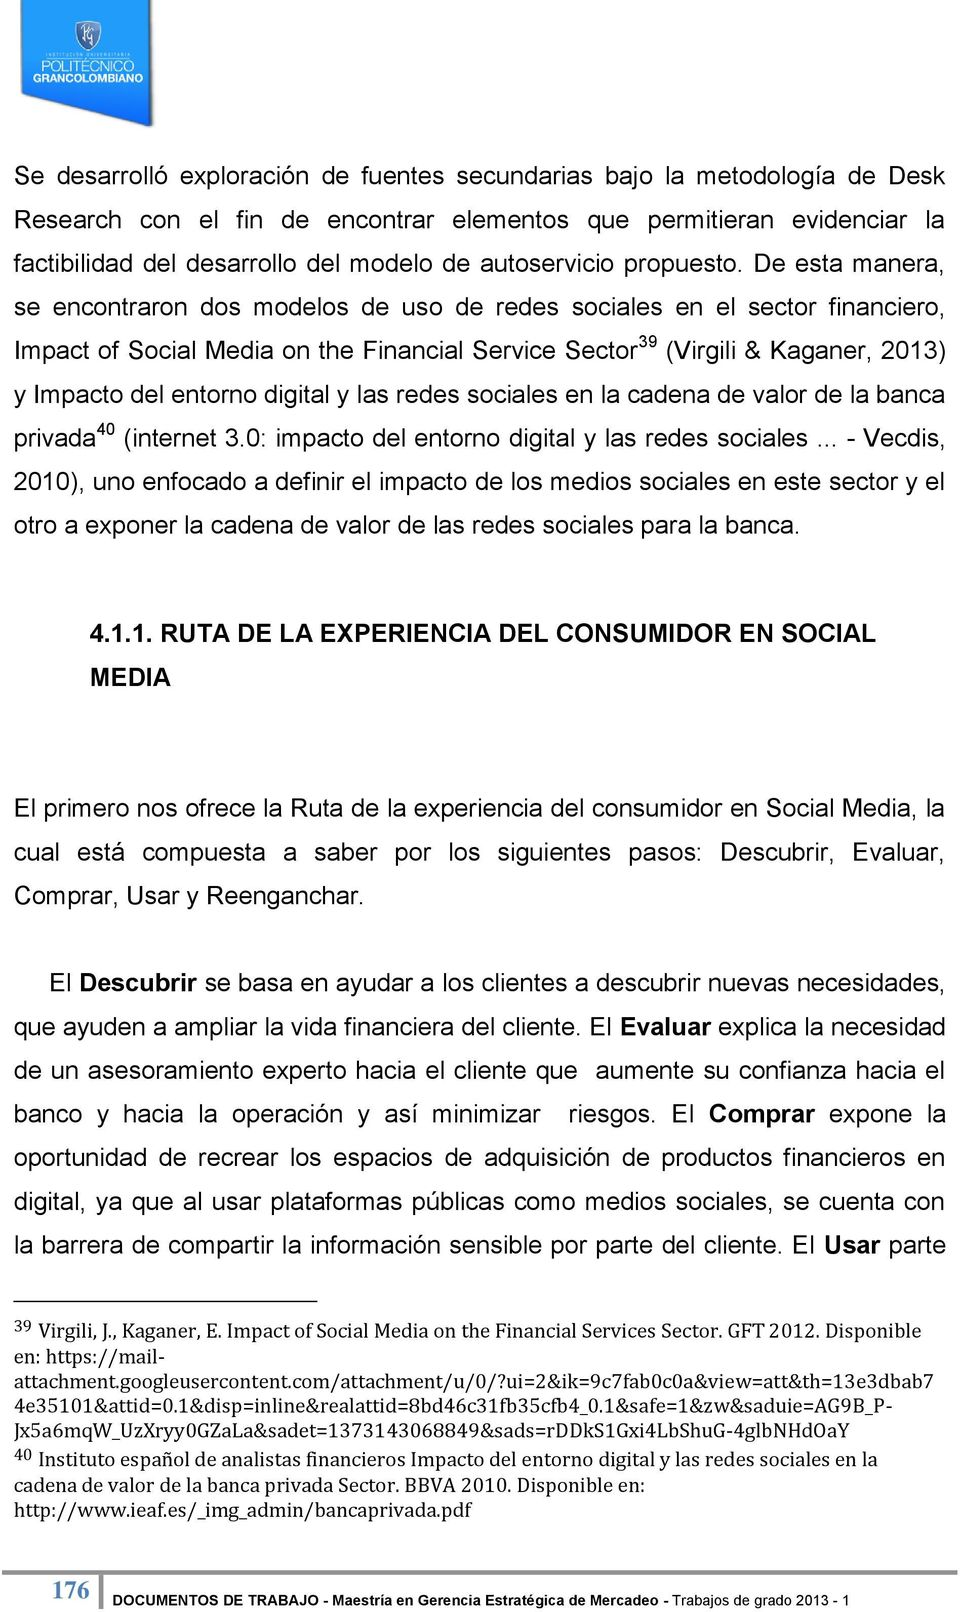 De esta manera, se encontraron dos modelos de uso de redes sociales en el sector financiero, Impact of Social Media on the Financial Service Sector 39 (Virgili & Kaganer, 2013) y Impacto del entorno